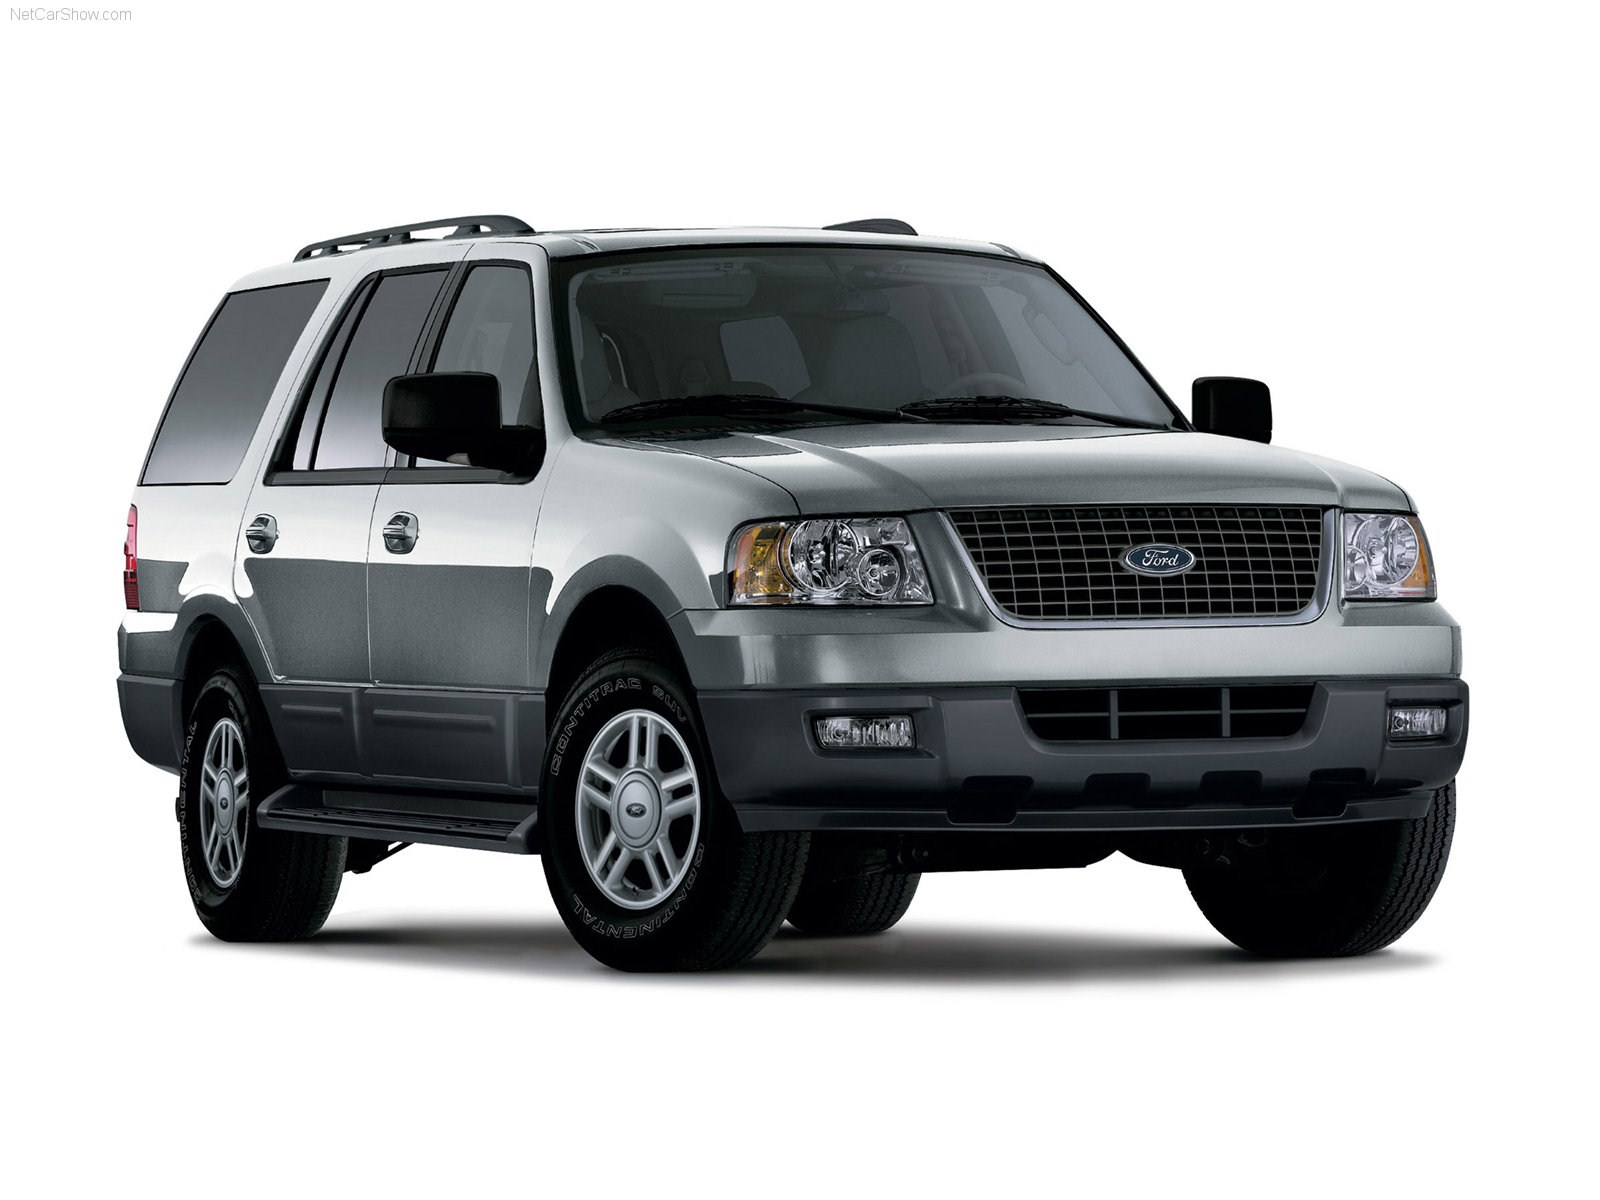 ford expedition images car hd wallpapers prices review. Black Bedroom Furniture Sets. Home Design Ideas